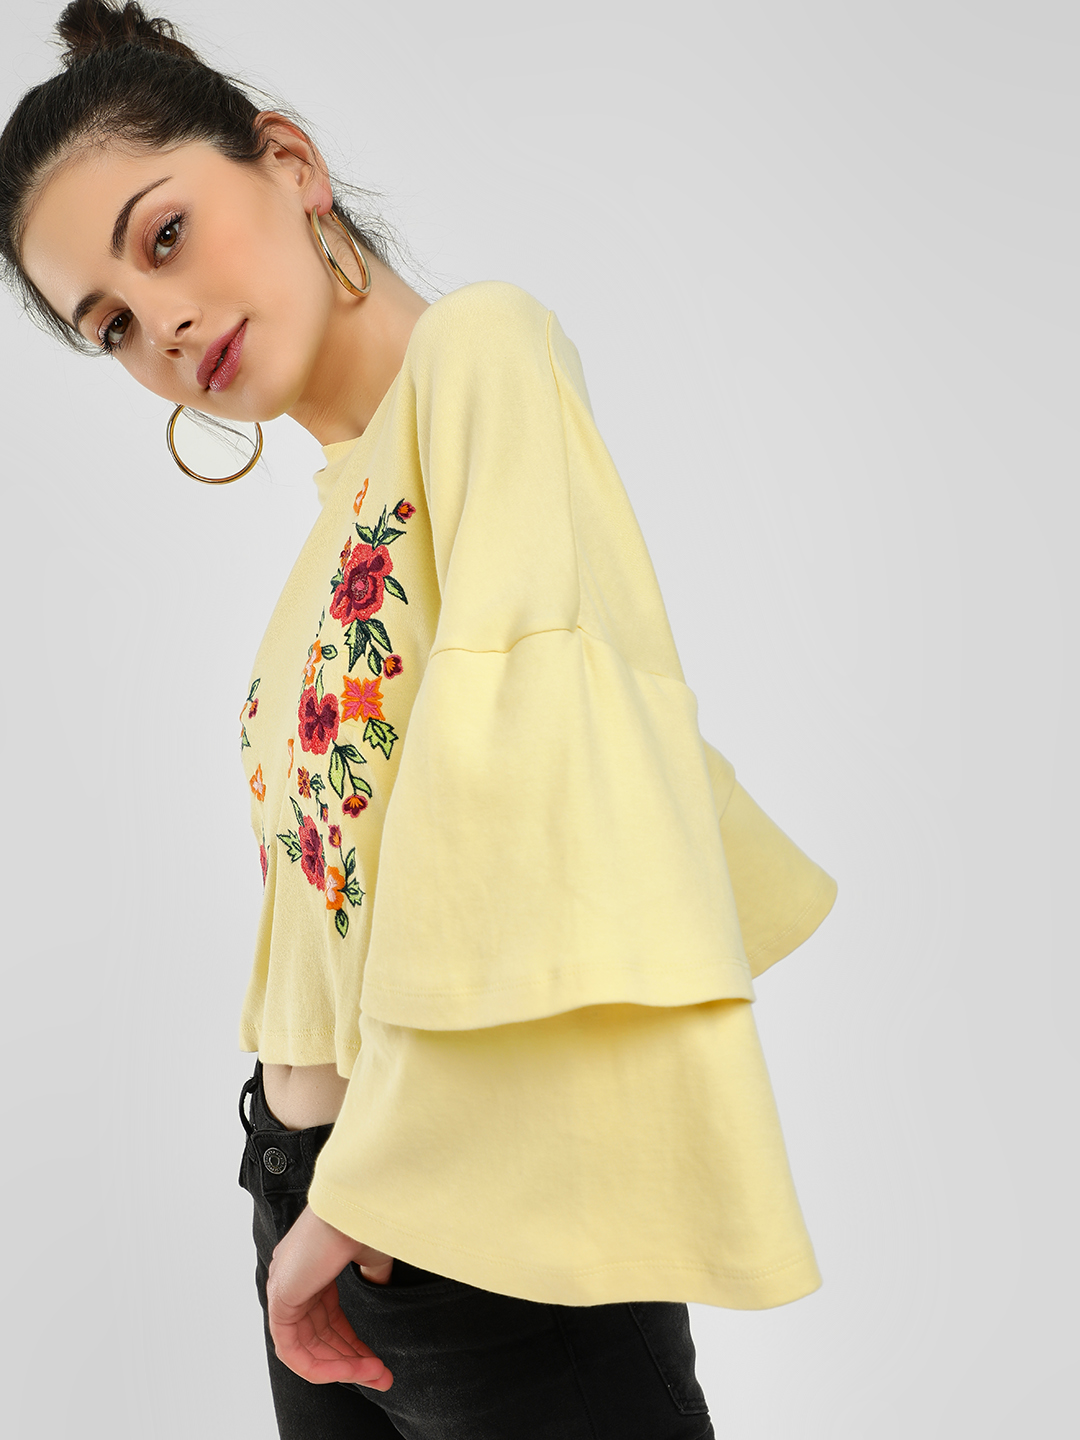 Sbuys Yellow Floral Embroidered Crop Top 1